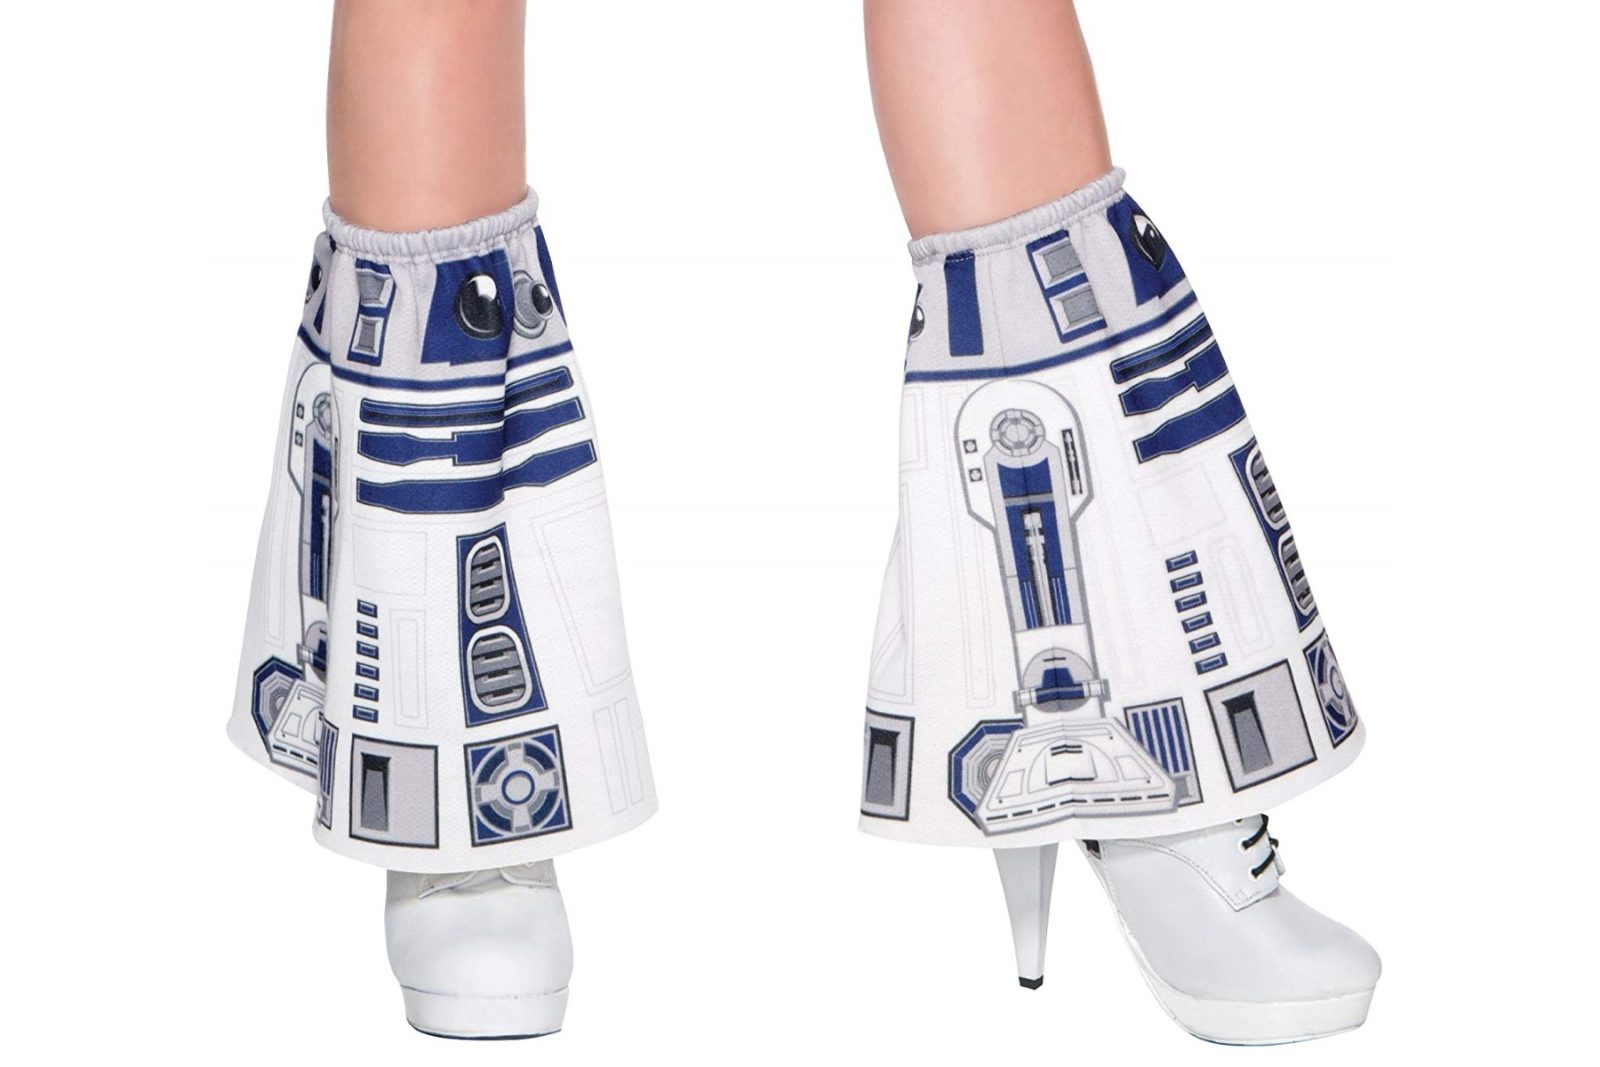 Star Wars R2-D2 Cosplay Legwear on Amazon